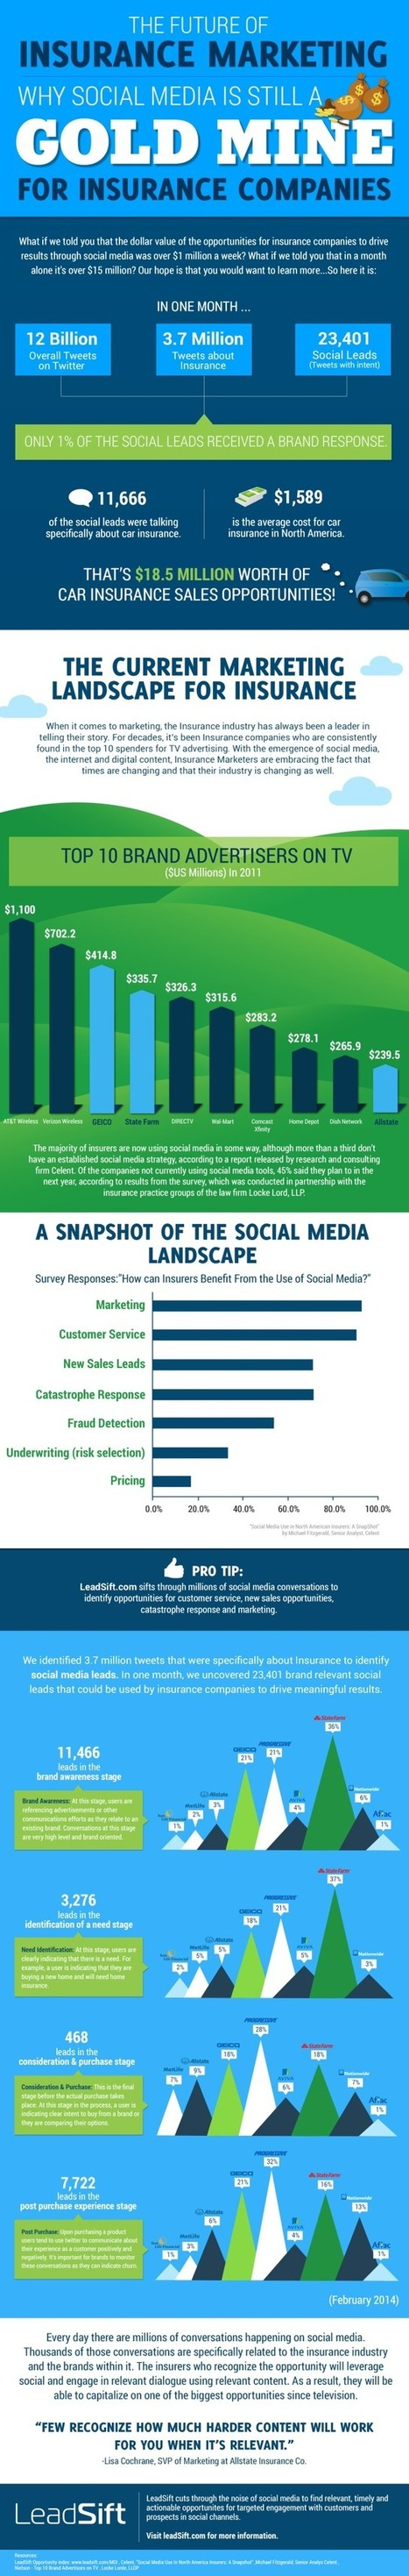 Infographic: Social Media is a Gold Mine for Insurance Marketing - Marketing Technology Blog | Digital-News on Scoop.it today | Scoop.it